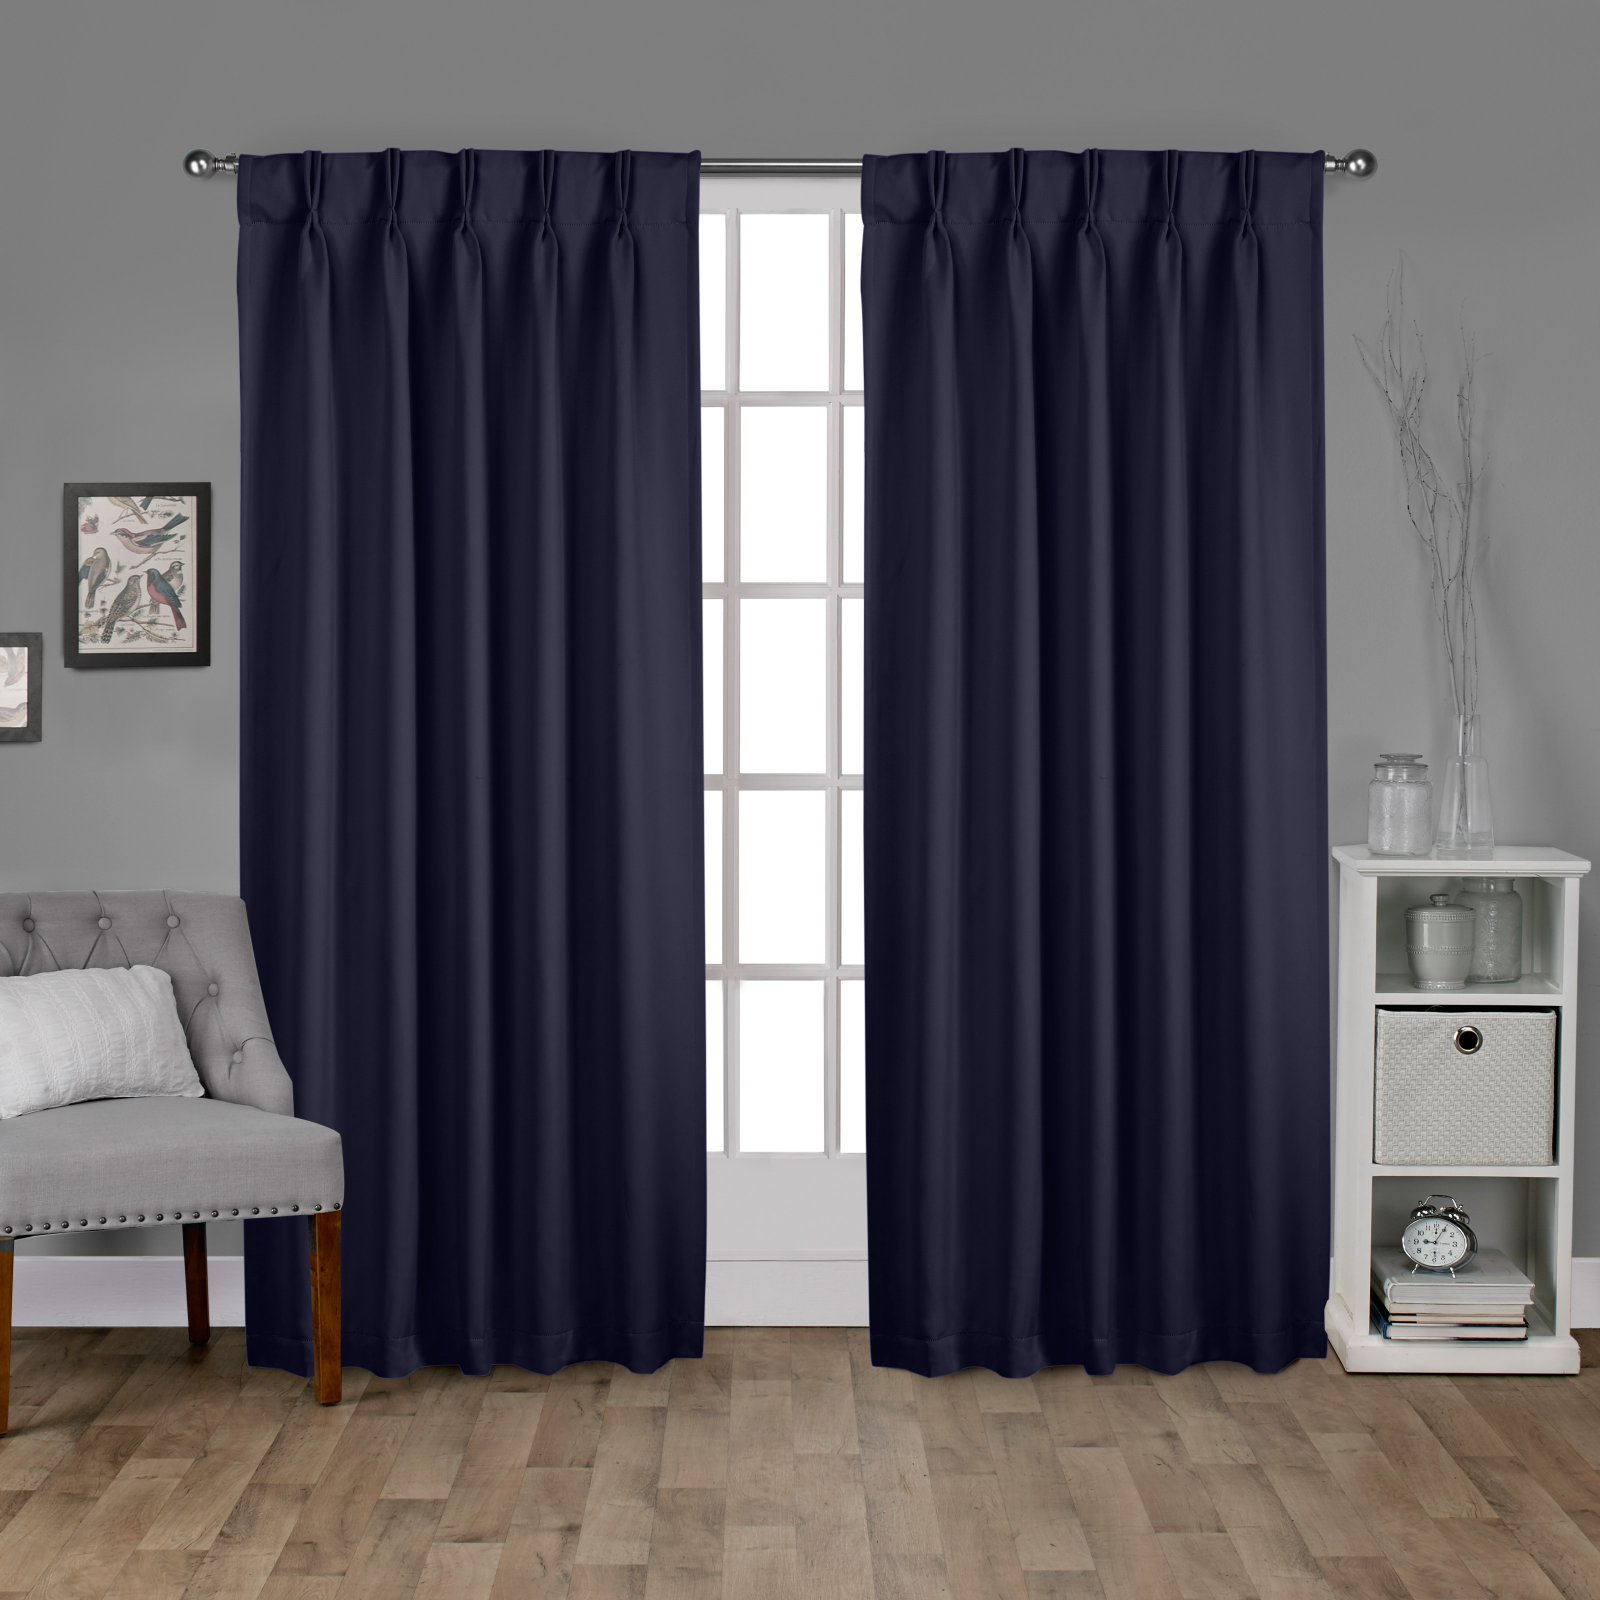 Exclusive Home Sateen Woven Blackout Window Curtain Panel Pair with Pinch Pleat Top by Amalgamated Textiles